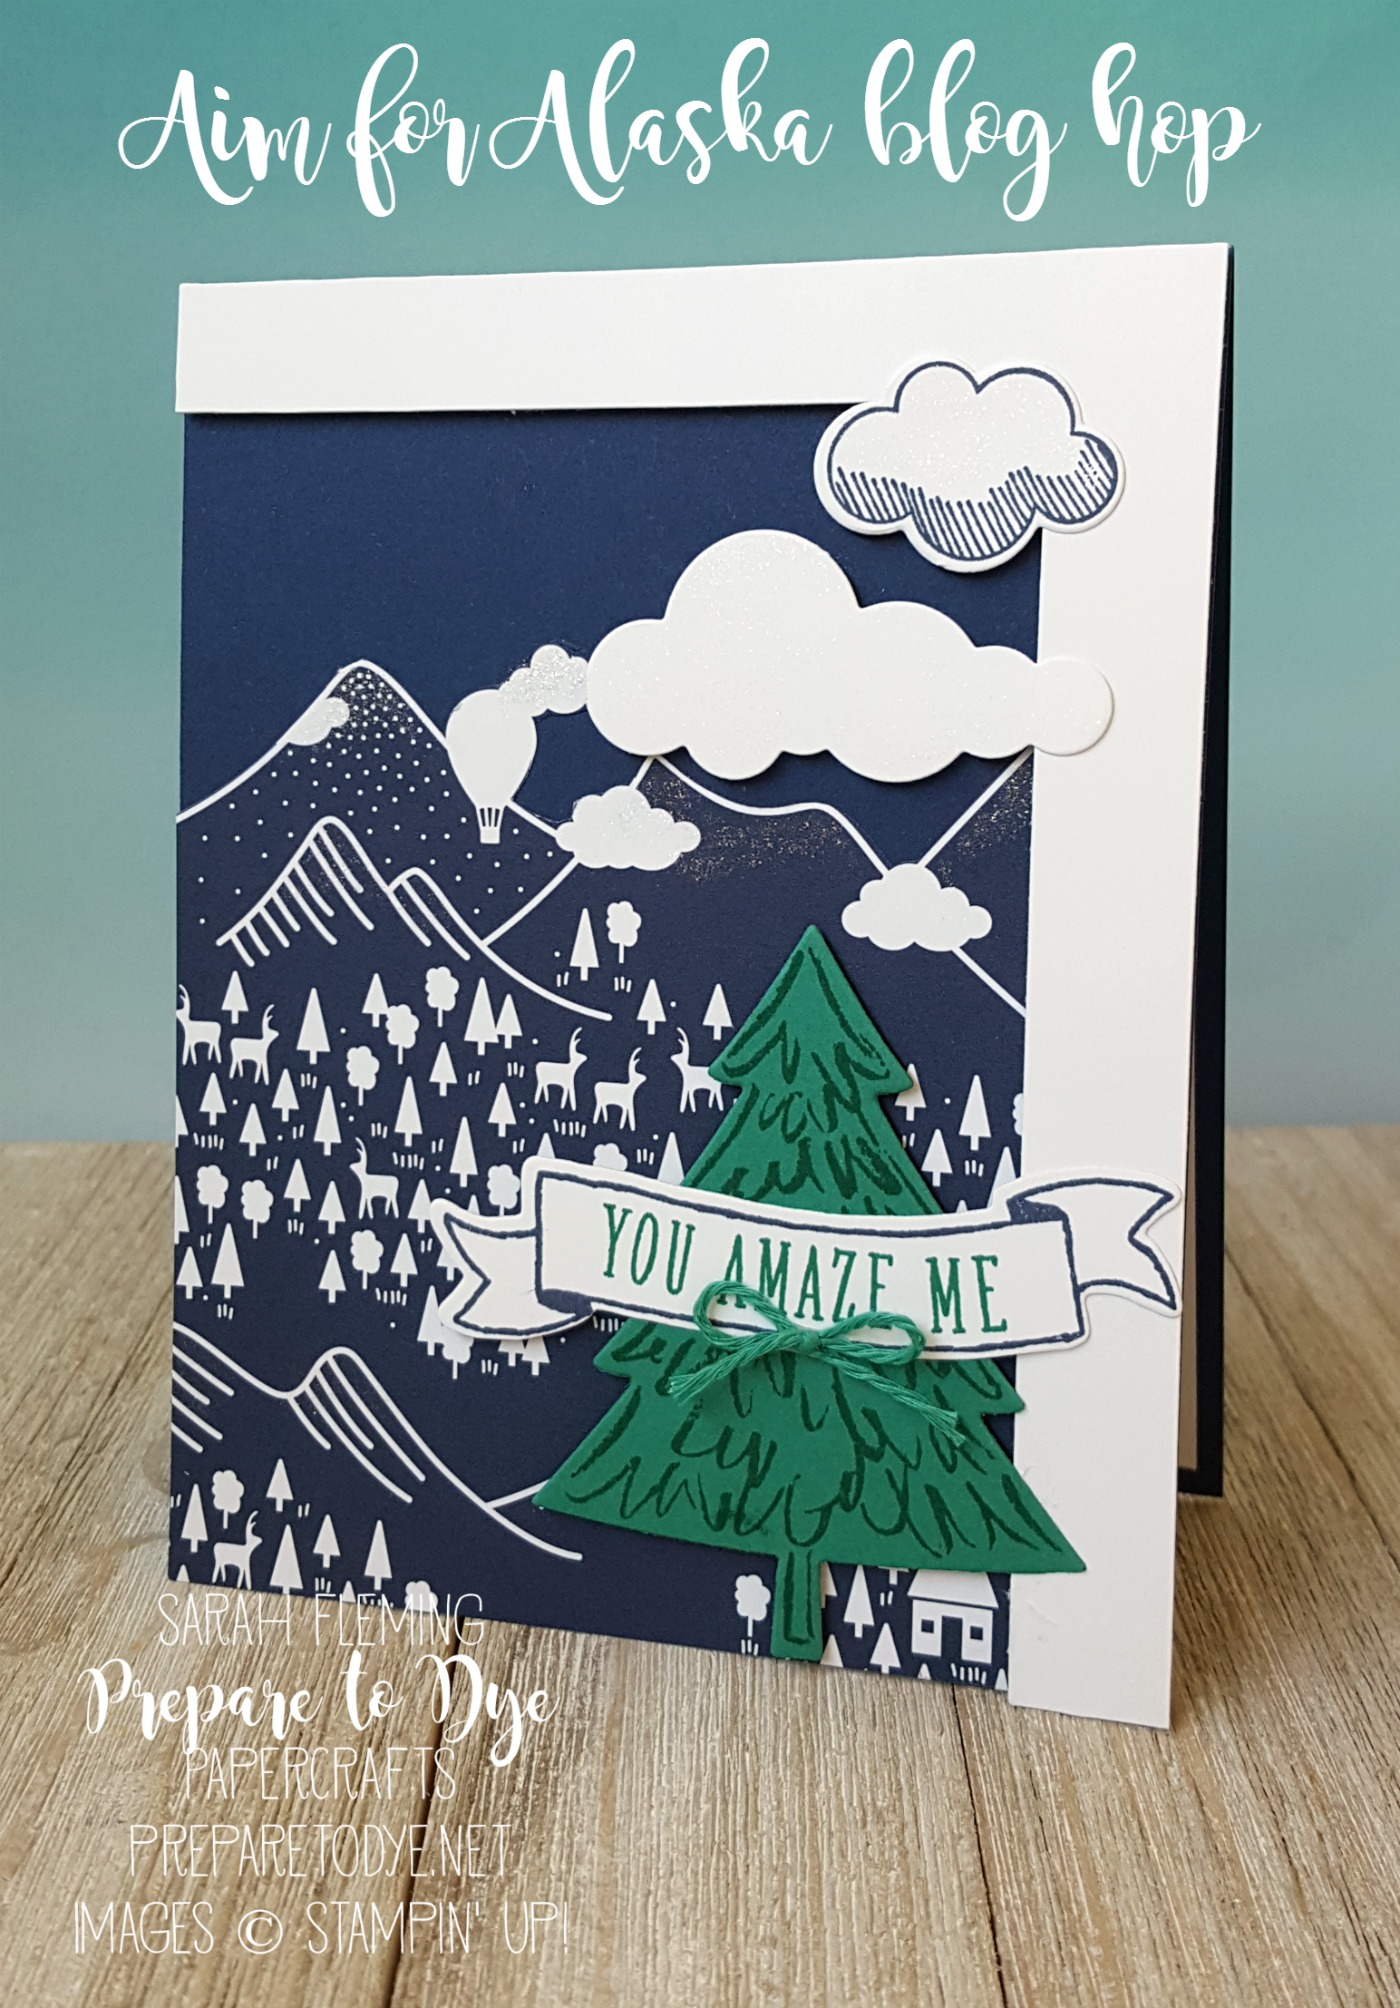 Stampin' Up! Carried Away designer series paper - Sale-A-Bration freebie with $50 purchase through March 31 - Banners for You Bundle - Bunch of Banners framelits - Peaceful Pines and Perfect Pines framelits - Up & Away bundle - Sarah Fleming - Prepare to Dye Papercrafts - #stampinup #6monthstampingoals #aimforalaska